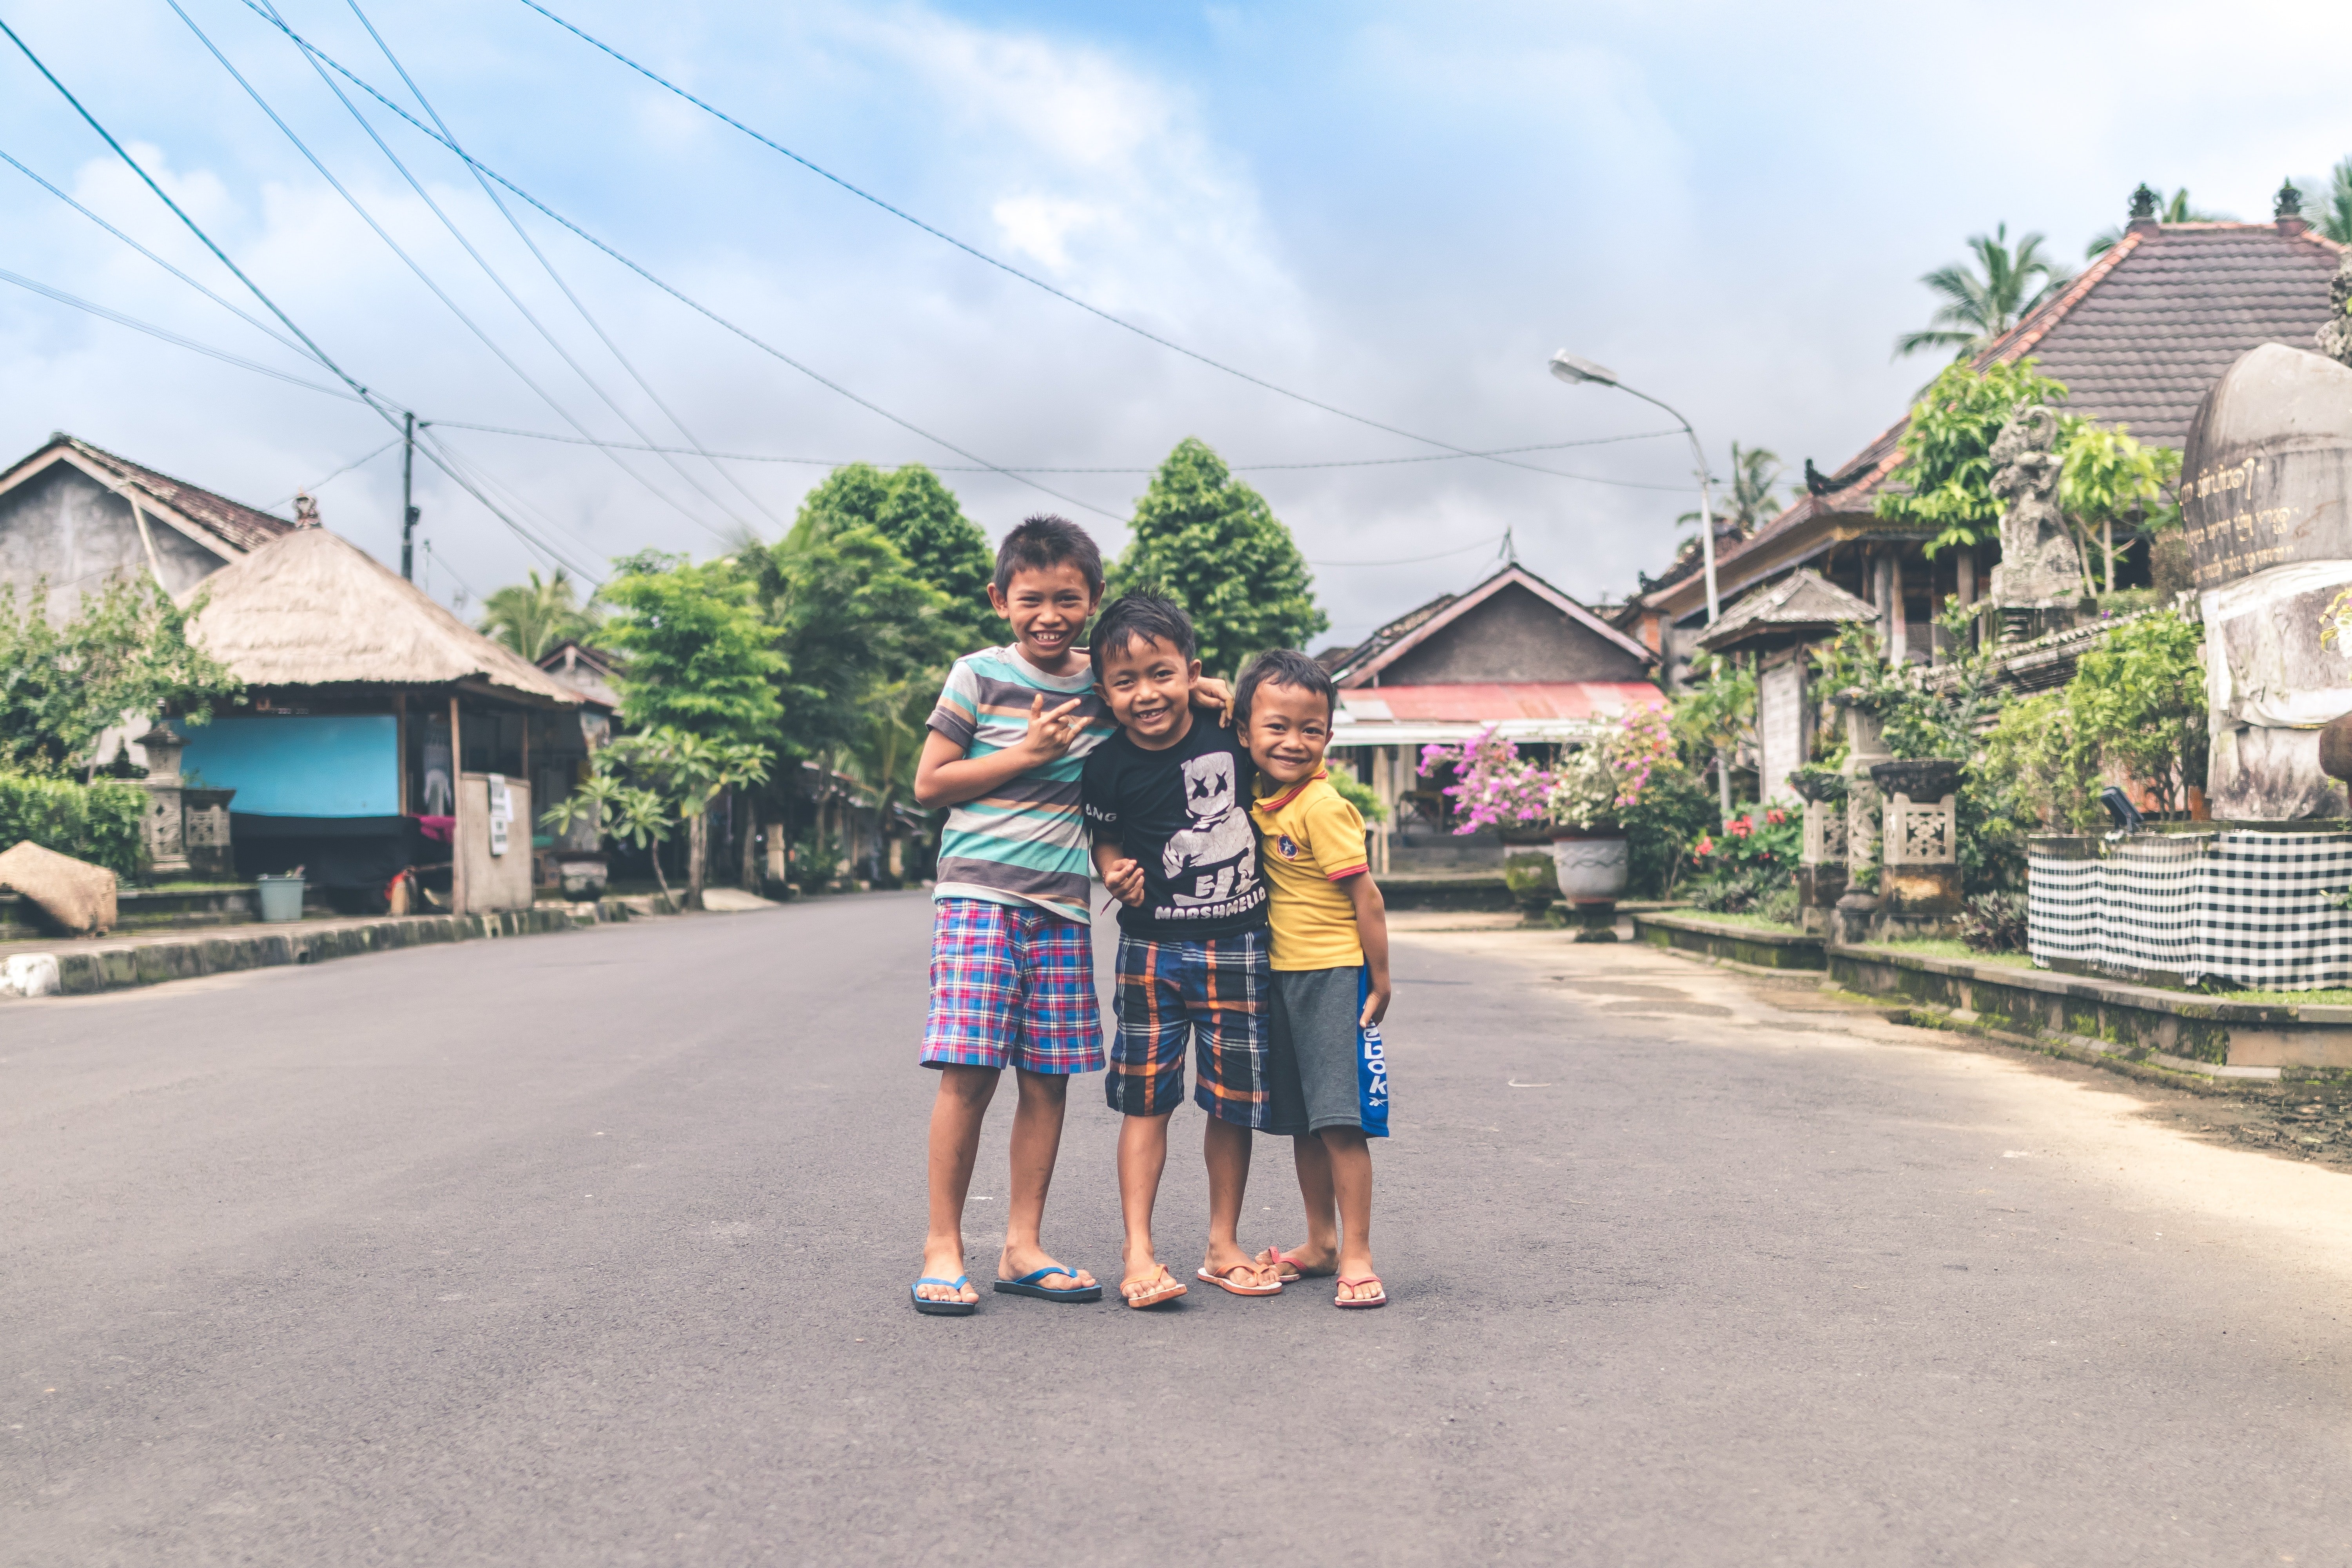 Pictured - Three young boys posing for a photo on the road | Source: Pexels